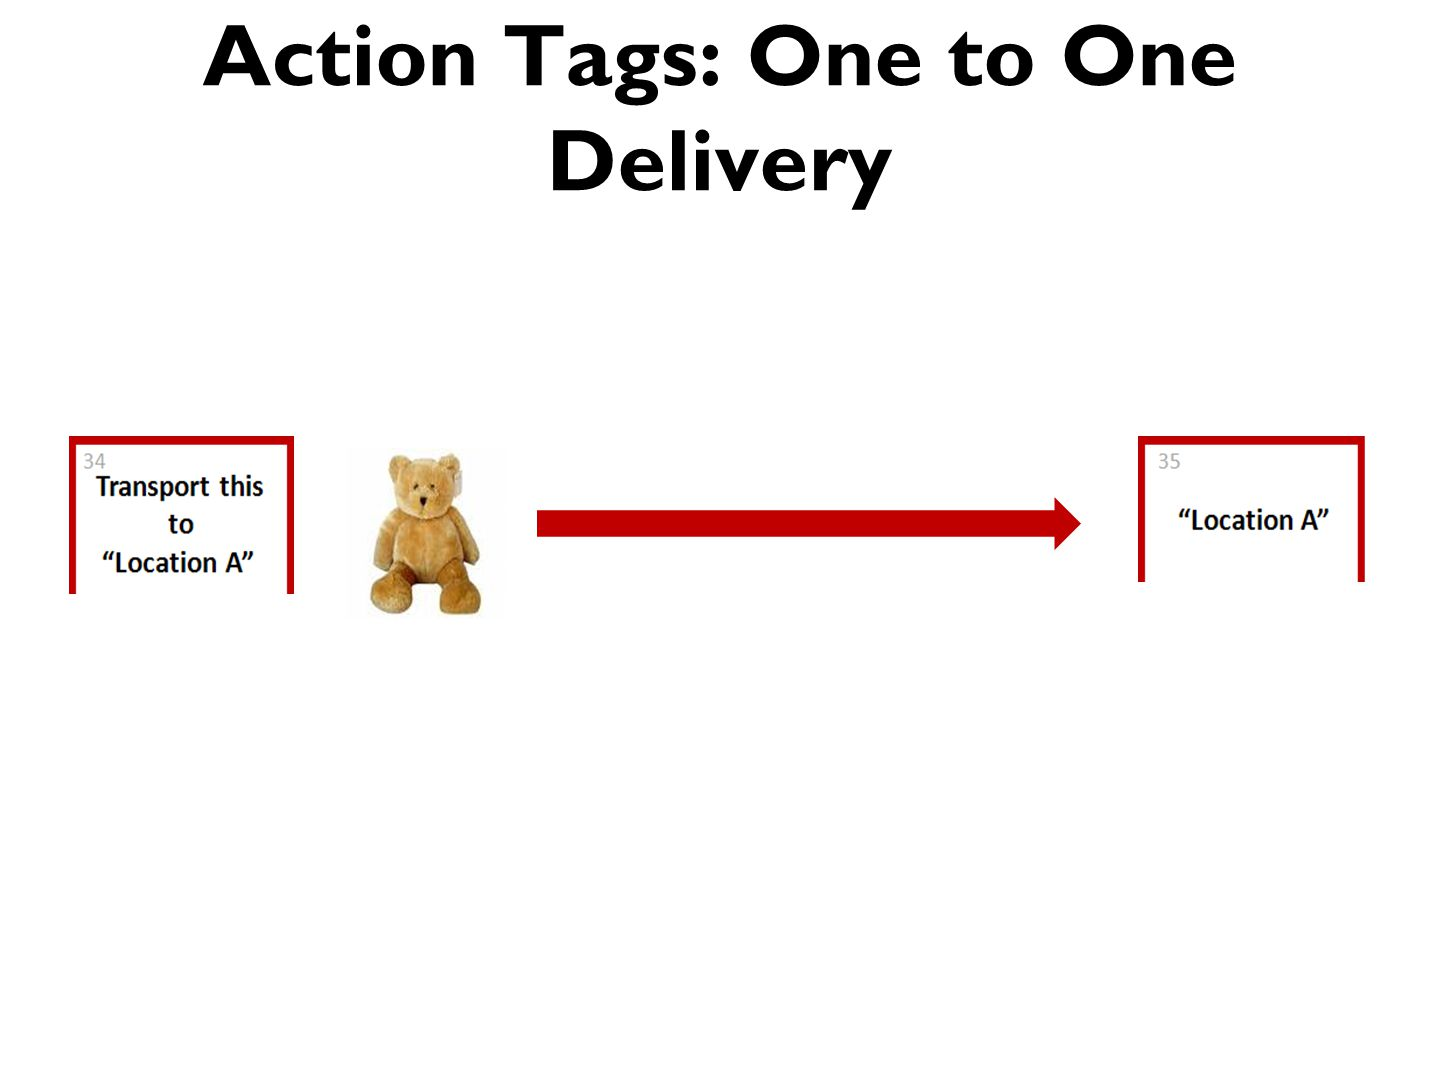 Action Tags: One to One Delivery